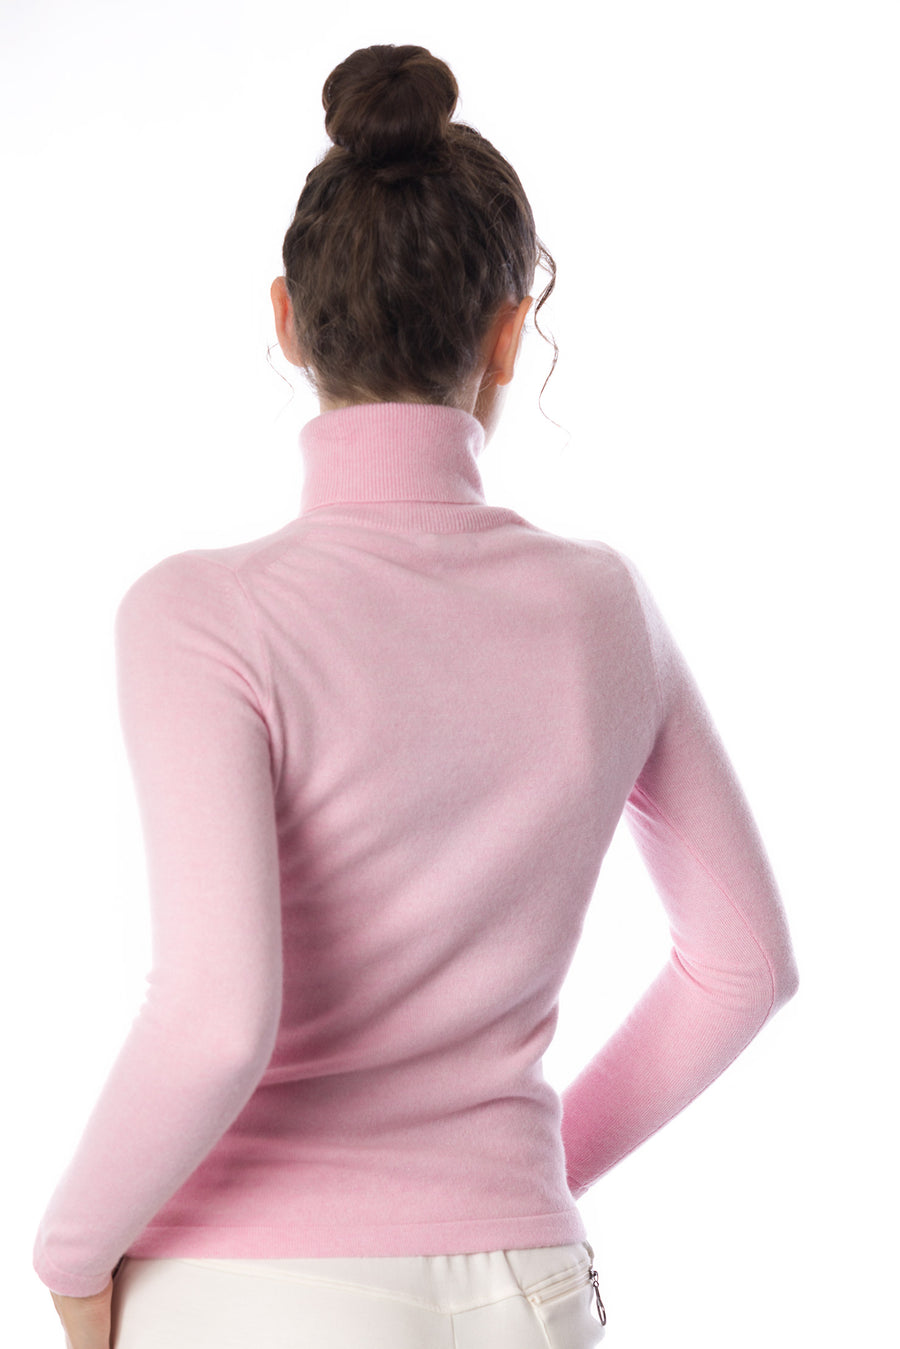 Sustainable Cashmere Turtleneck Sweater - Soft Pink - Dongli Cashmere